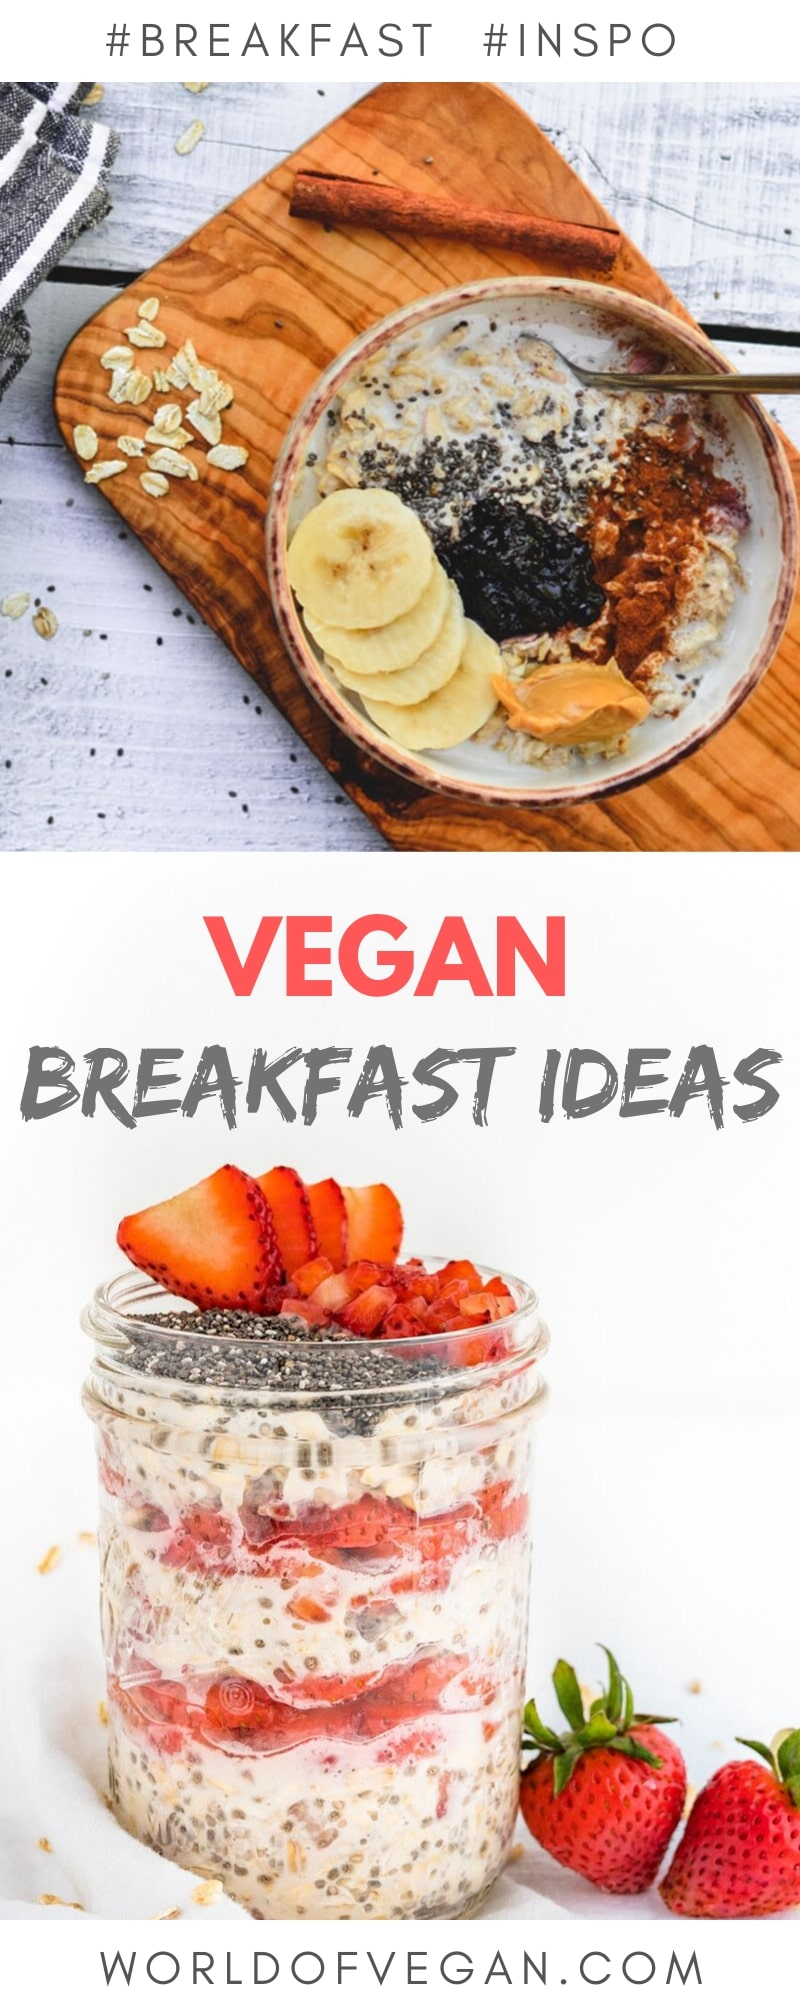 10 Easy Vegan Breakfast Ideas To Get Out of a Rut | WorldofVegan.com